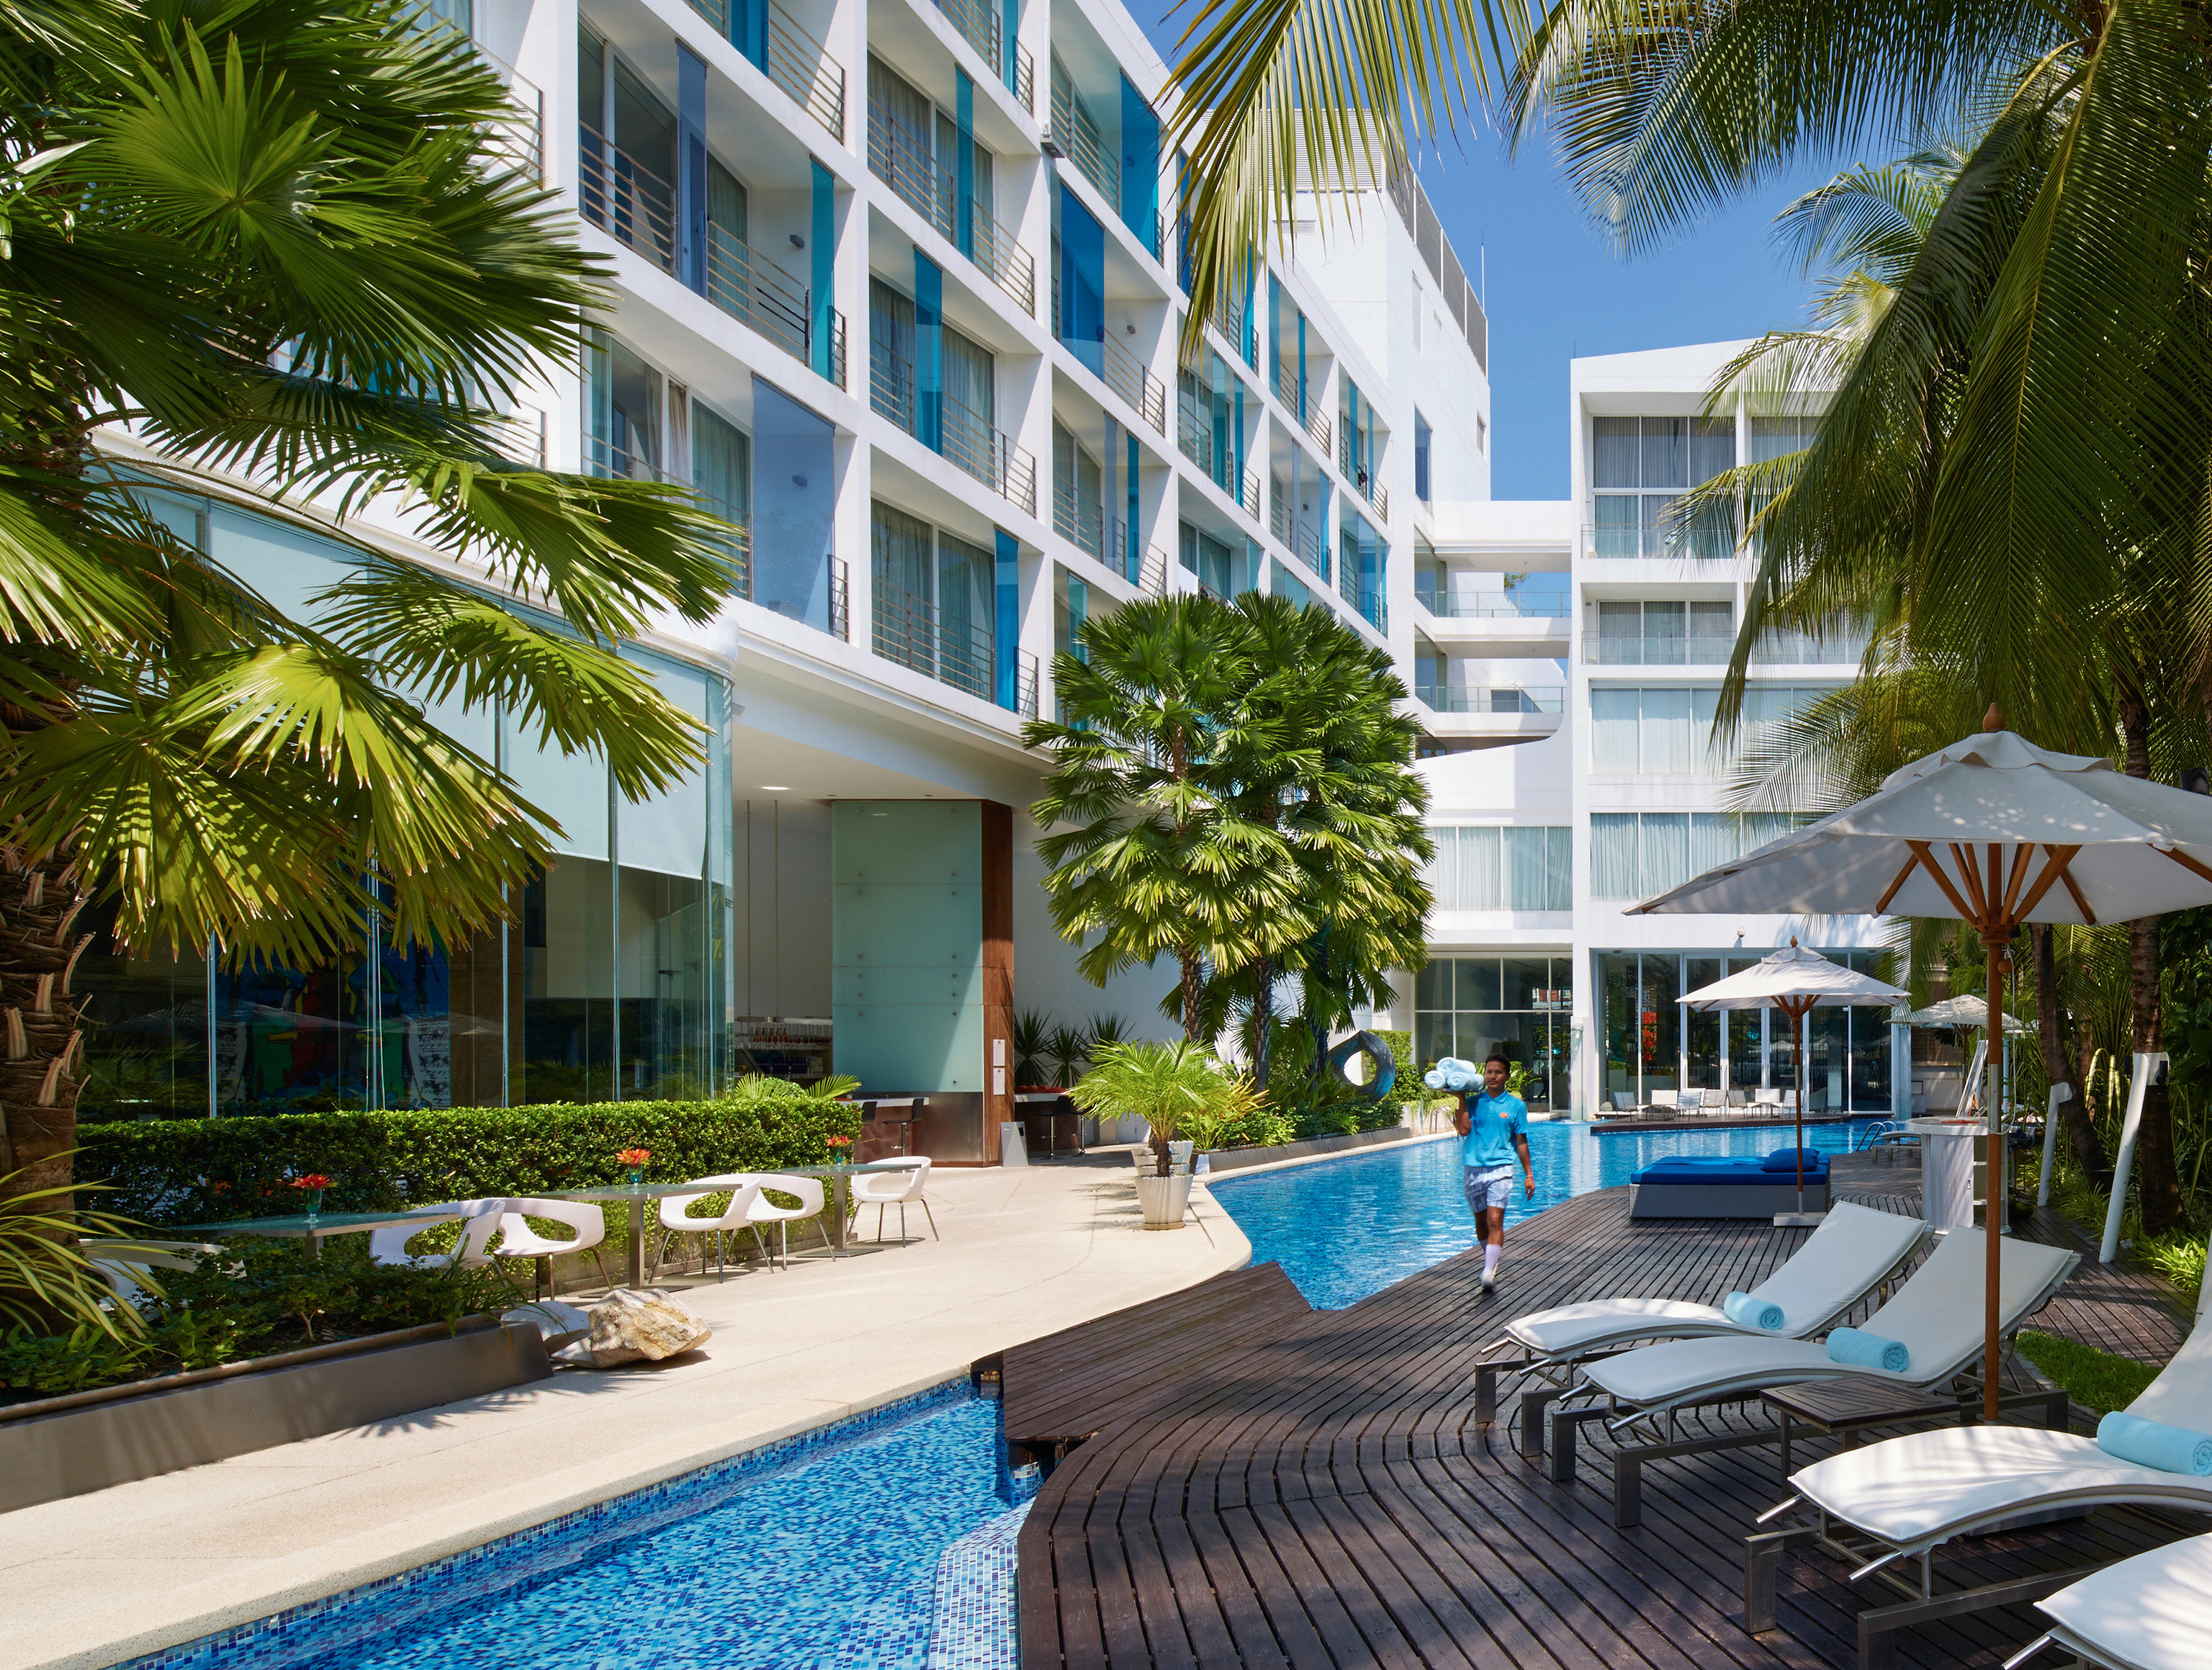 tree condominium Resort property leisure building swimming pool caribbean home Pool arecales Villa palm